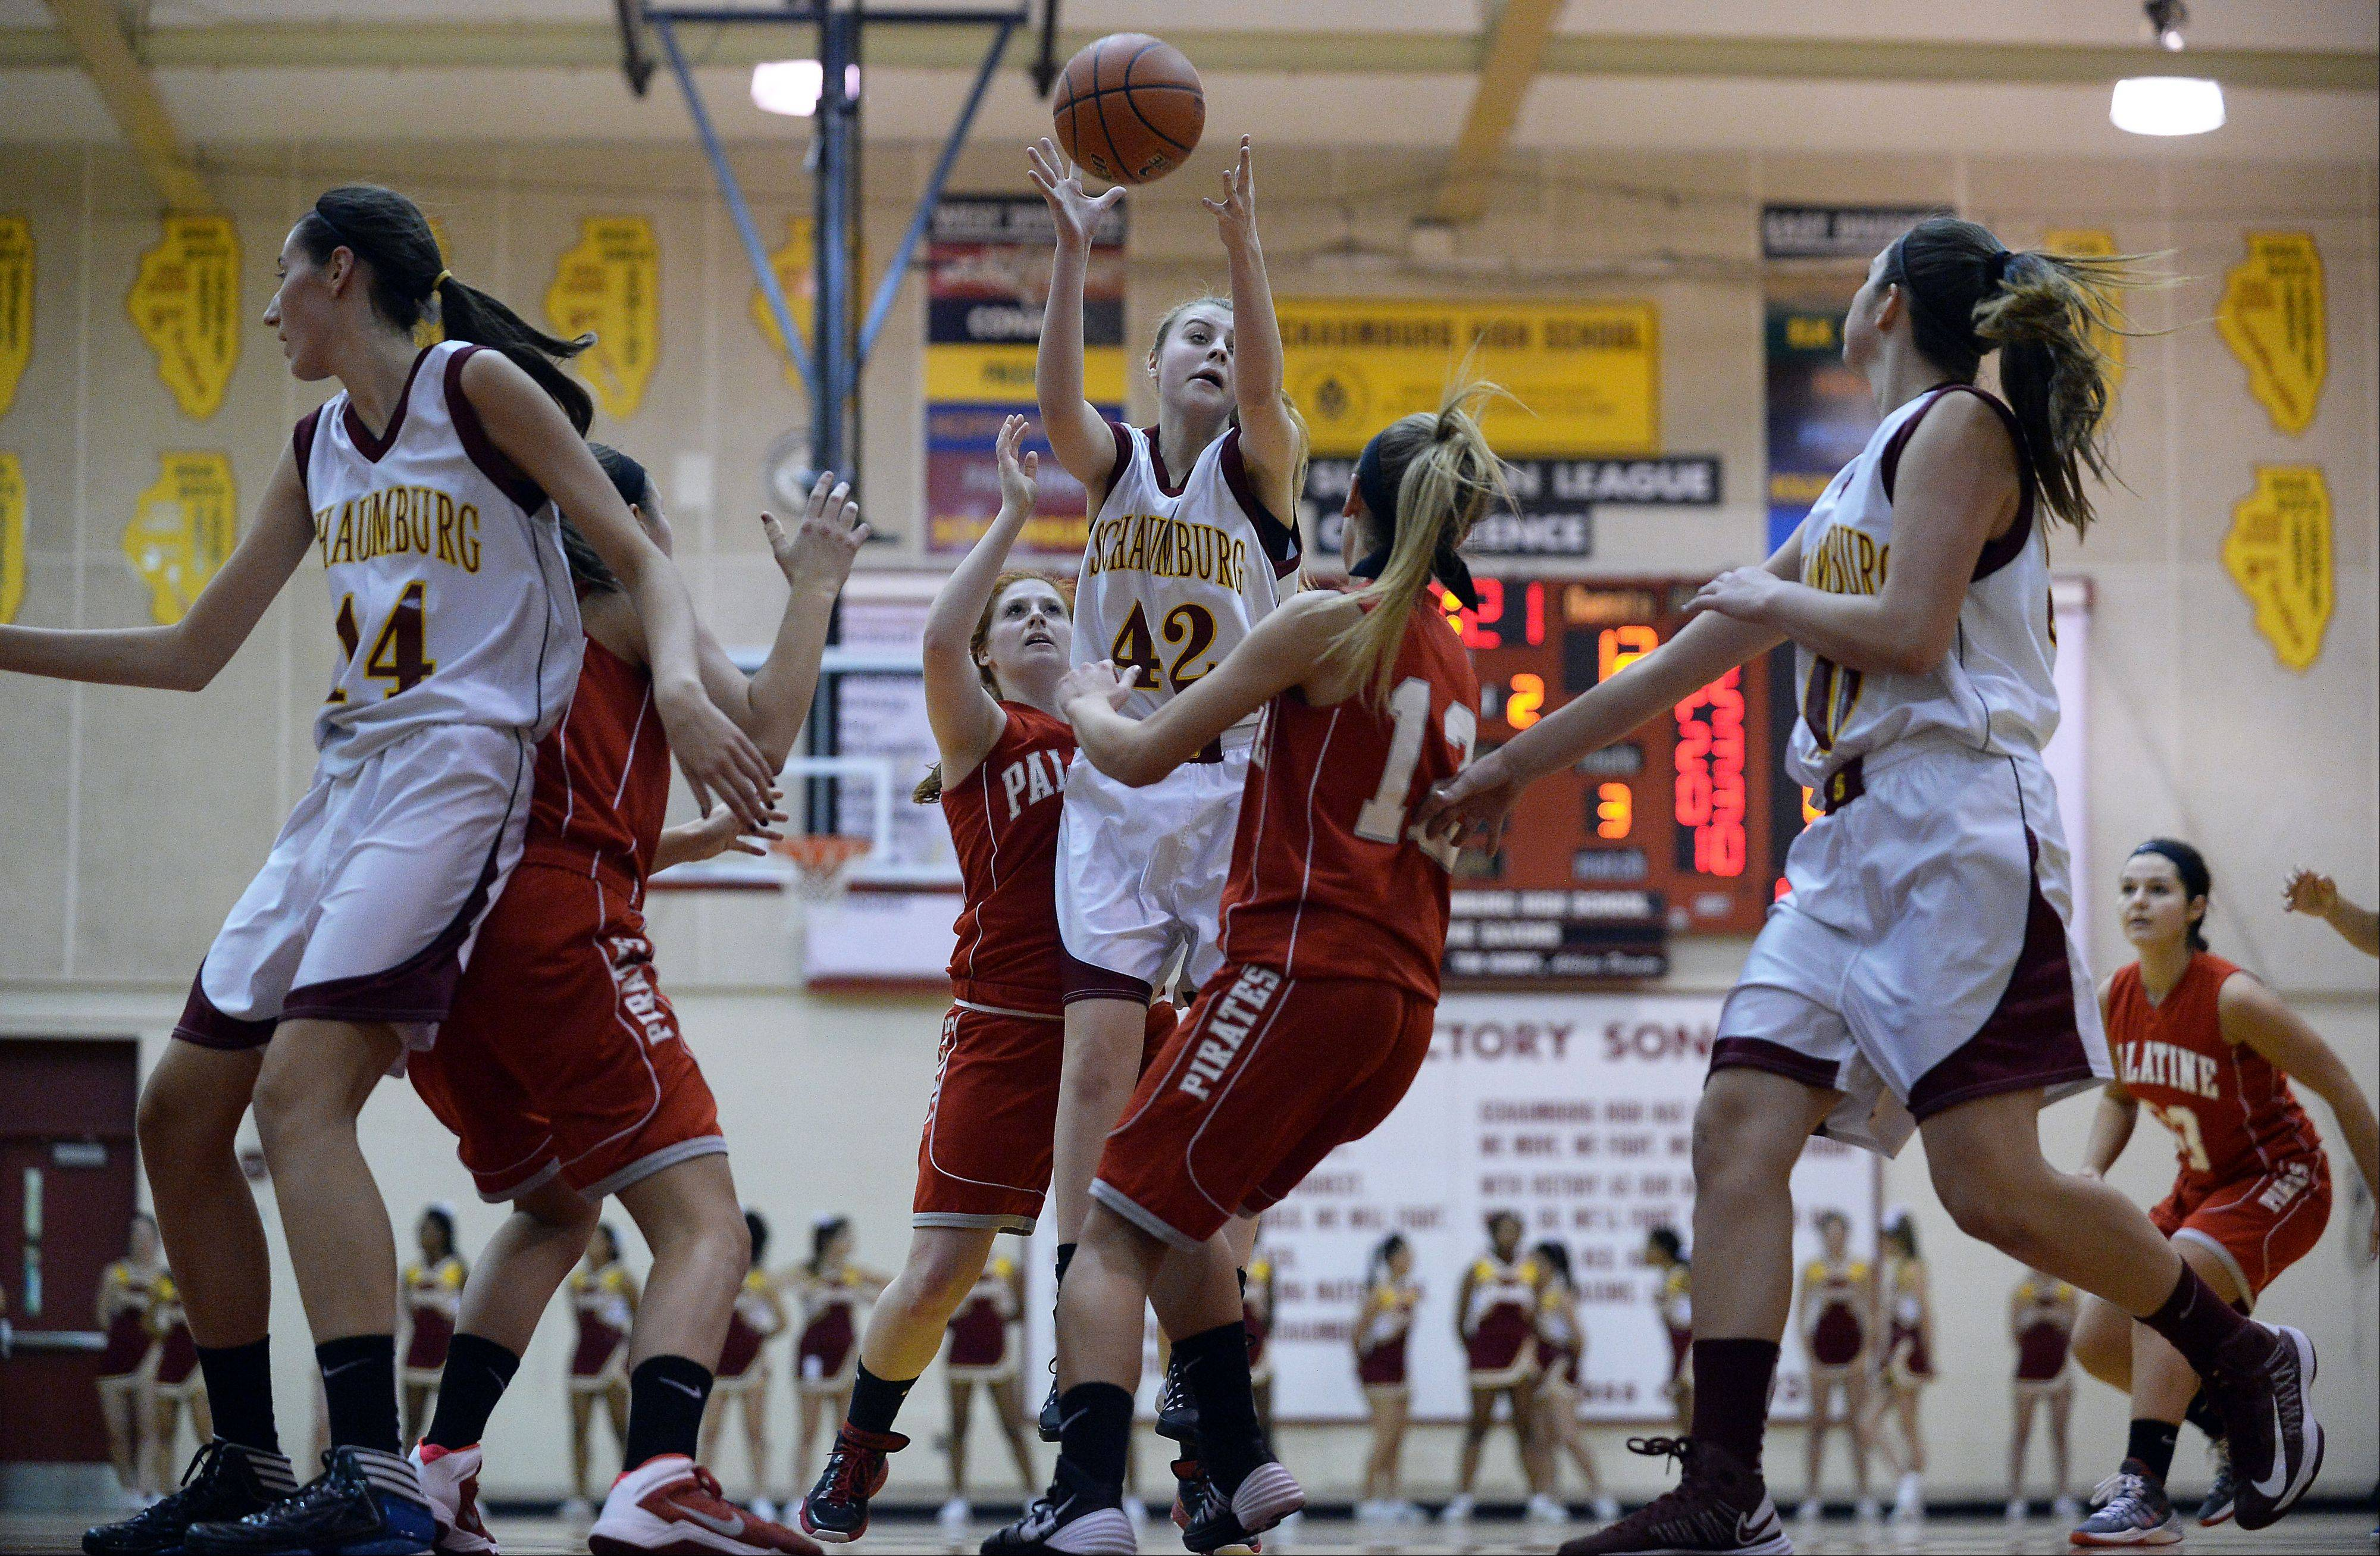 Schaumburg's Mallory Gerber pulls down a rebound in the first half.